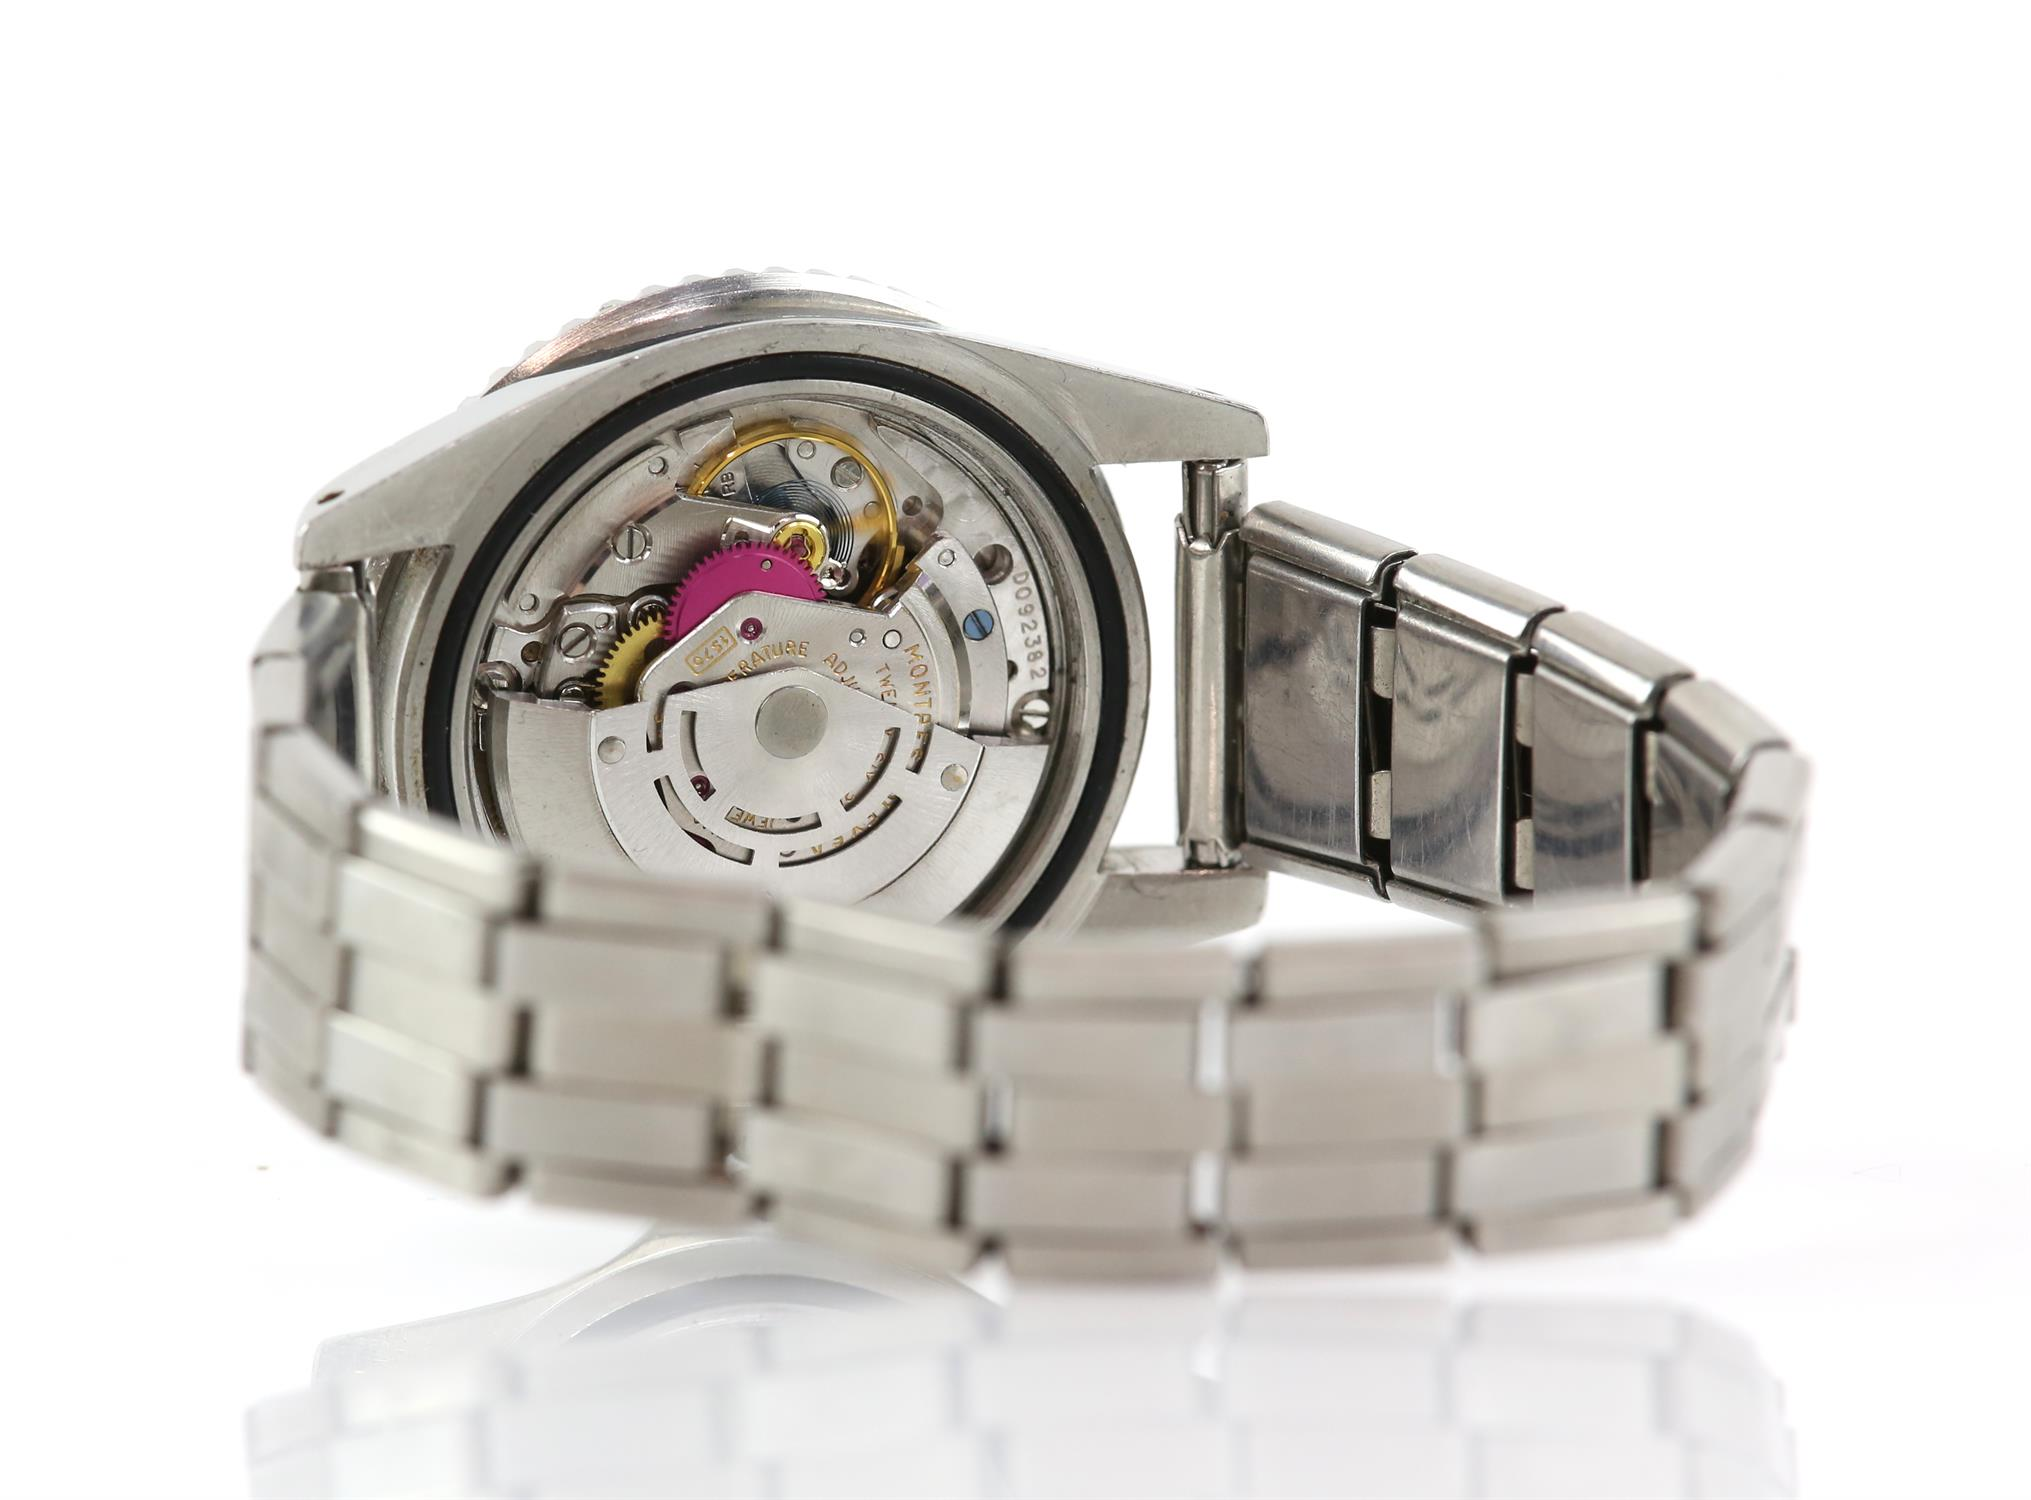 Rolex A gentleman's reference 1675 stainless steel GMT 'ghost dial' wristwatch, the signed dial - Image 4 of 4